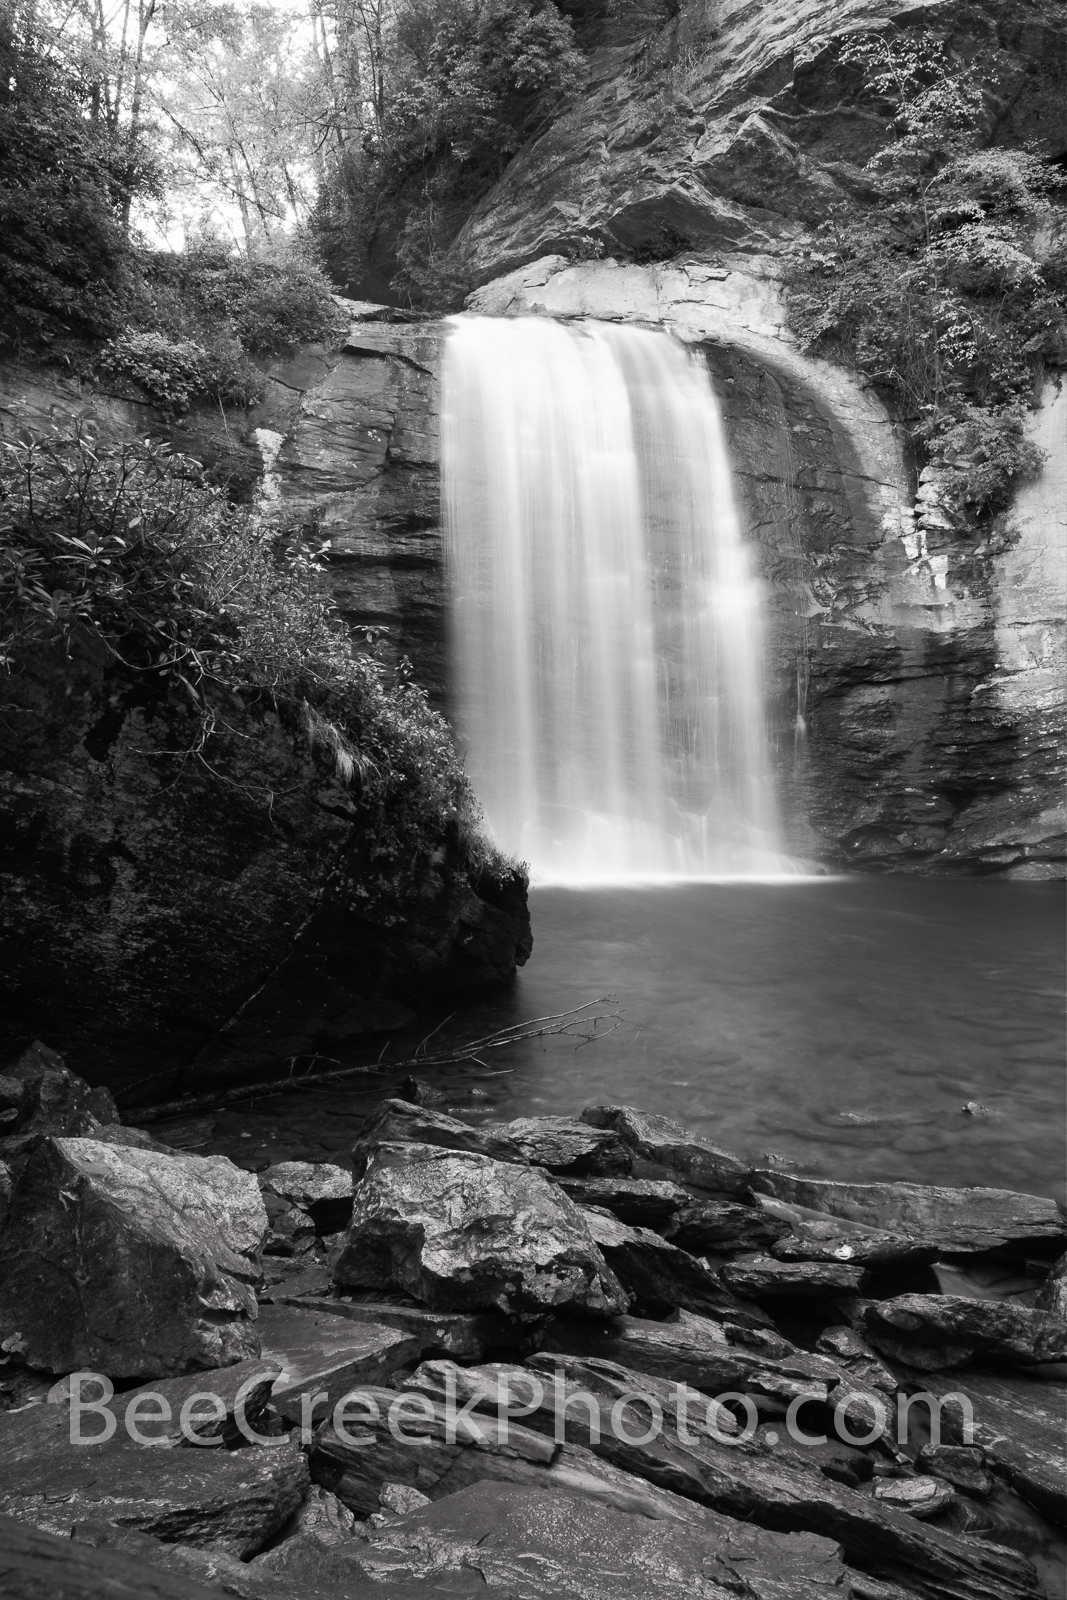 looking glass falls, black and white, B W, waterfalls, waterfall, falls, stream, rocks, slate, granite, geology, looking glass rock, 60 ft waterfall, creek, pisgah national forest, smoky national fore, photo